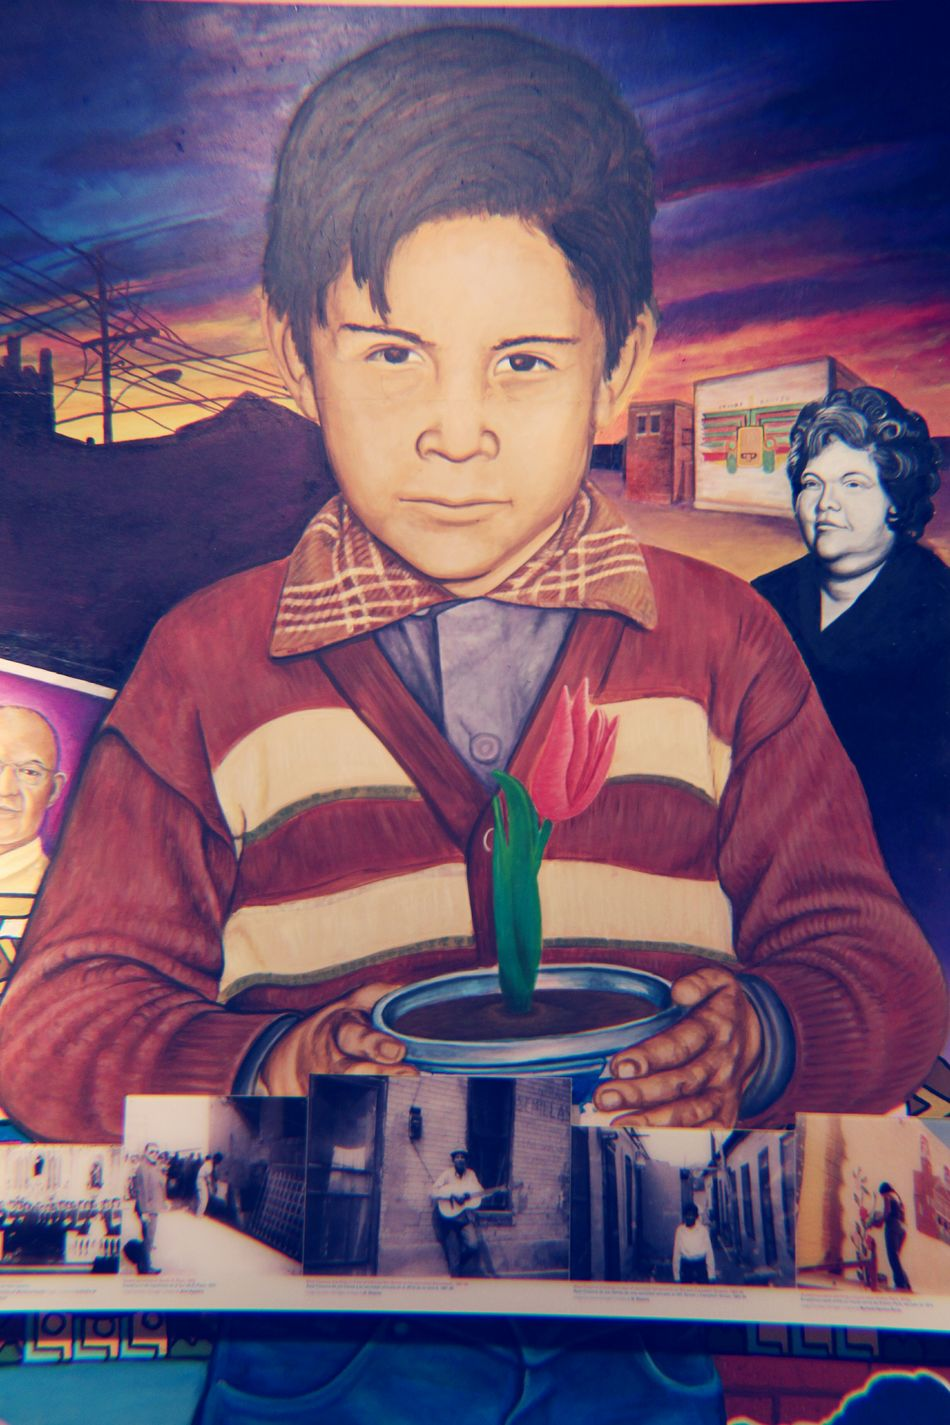 El Paso El Paso Museum Child Border Segundo Barrio Barrio History Frontera Migration Art Graphitti Mural Art Culture